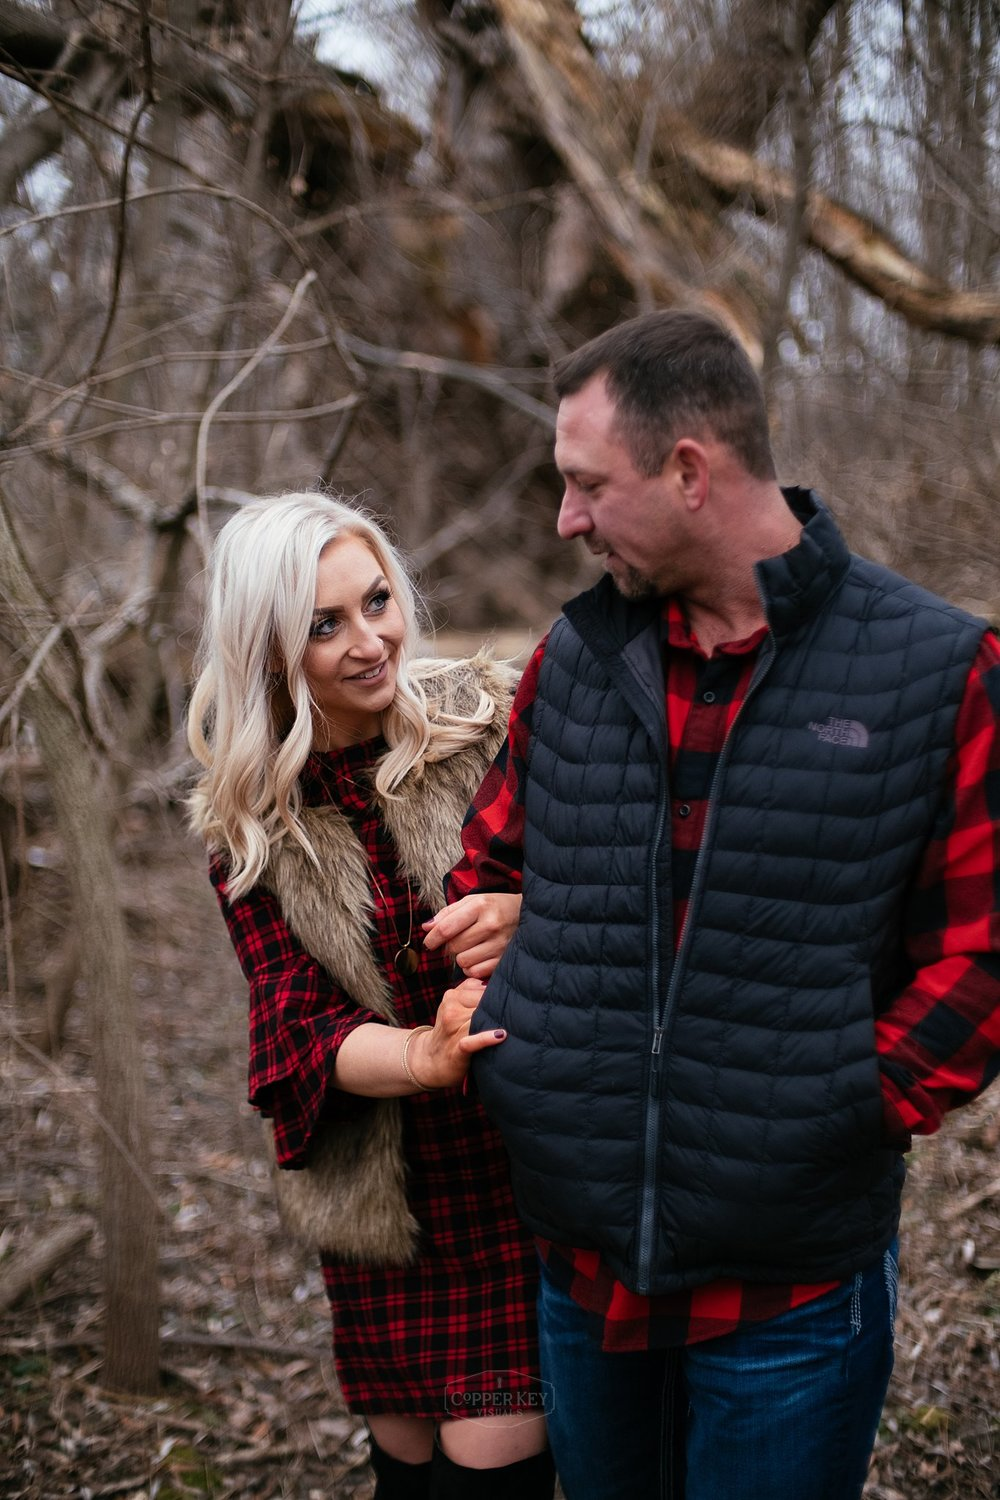 New Glarus Wisconsin Engagement Session Copper Key Visuals-6.jpg